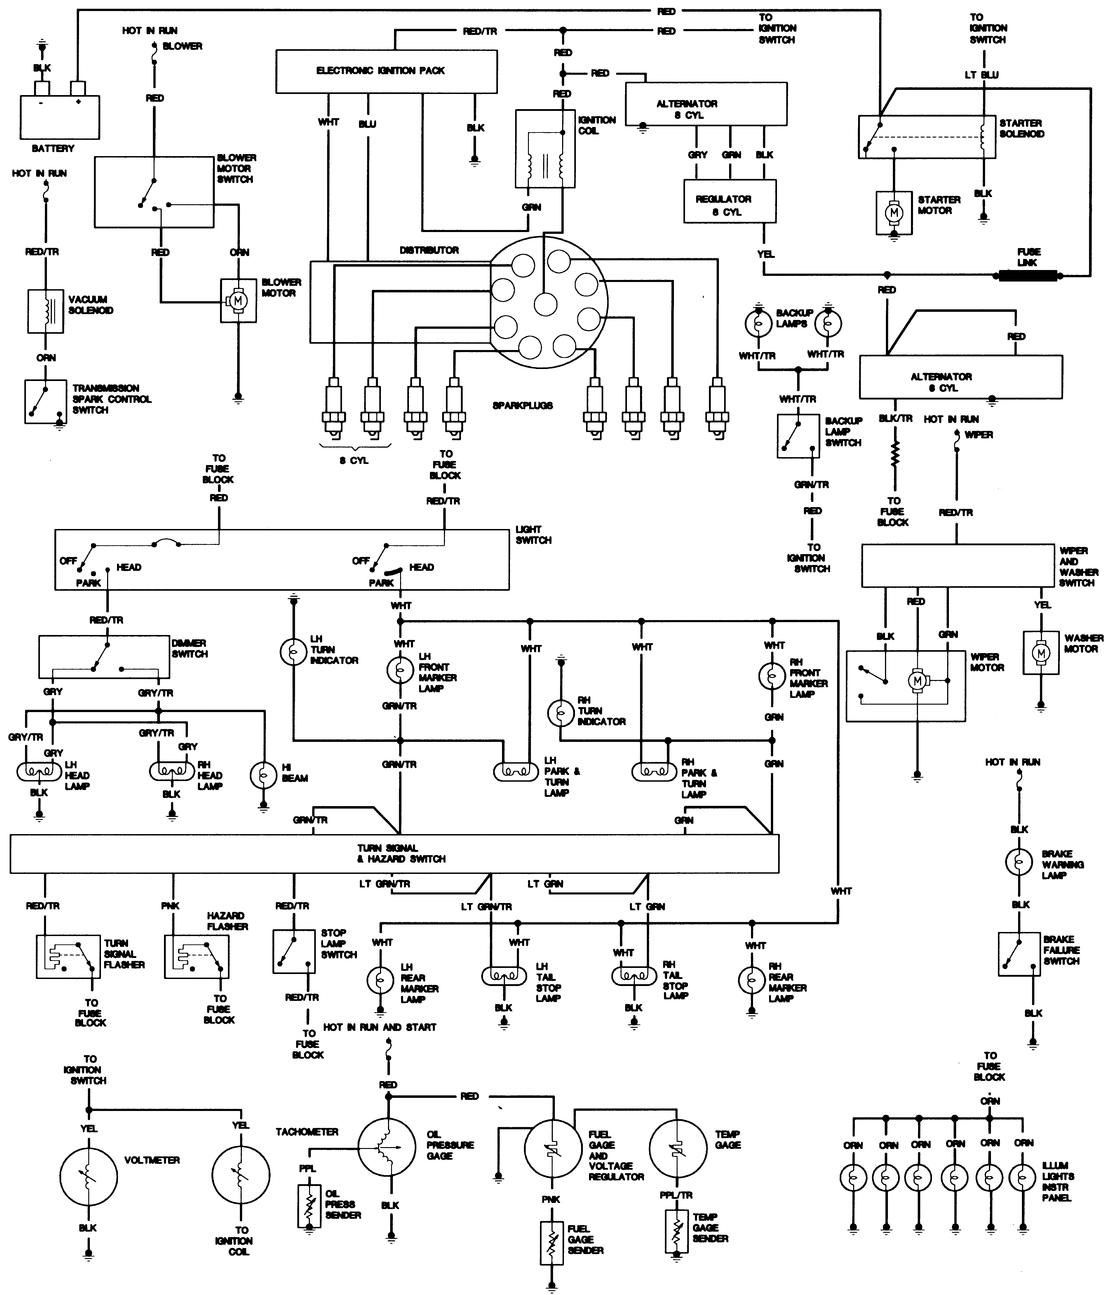 1980 cj5 wiring diagram furthermore jeep cj7 tachometer wiring diagram  along with jeep cj5 steering column diagram along with lighted rocker  switch wiring ...